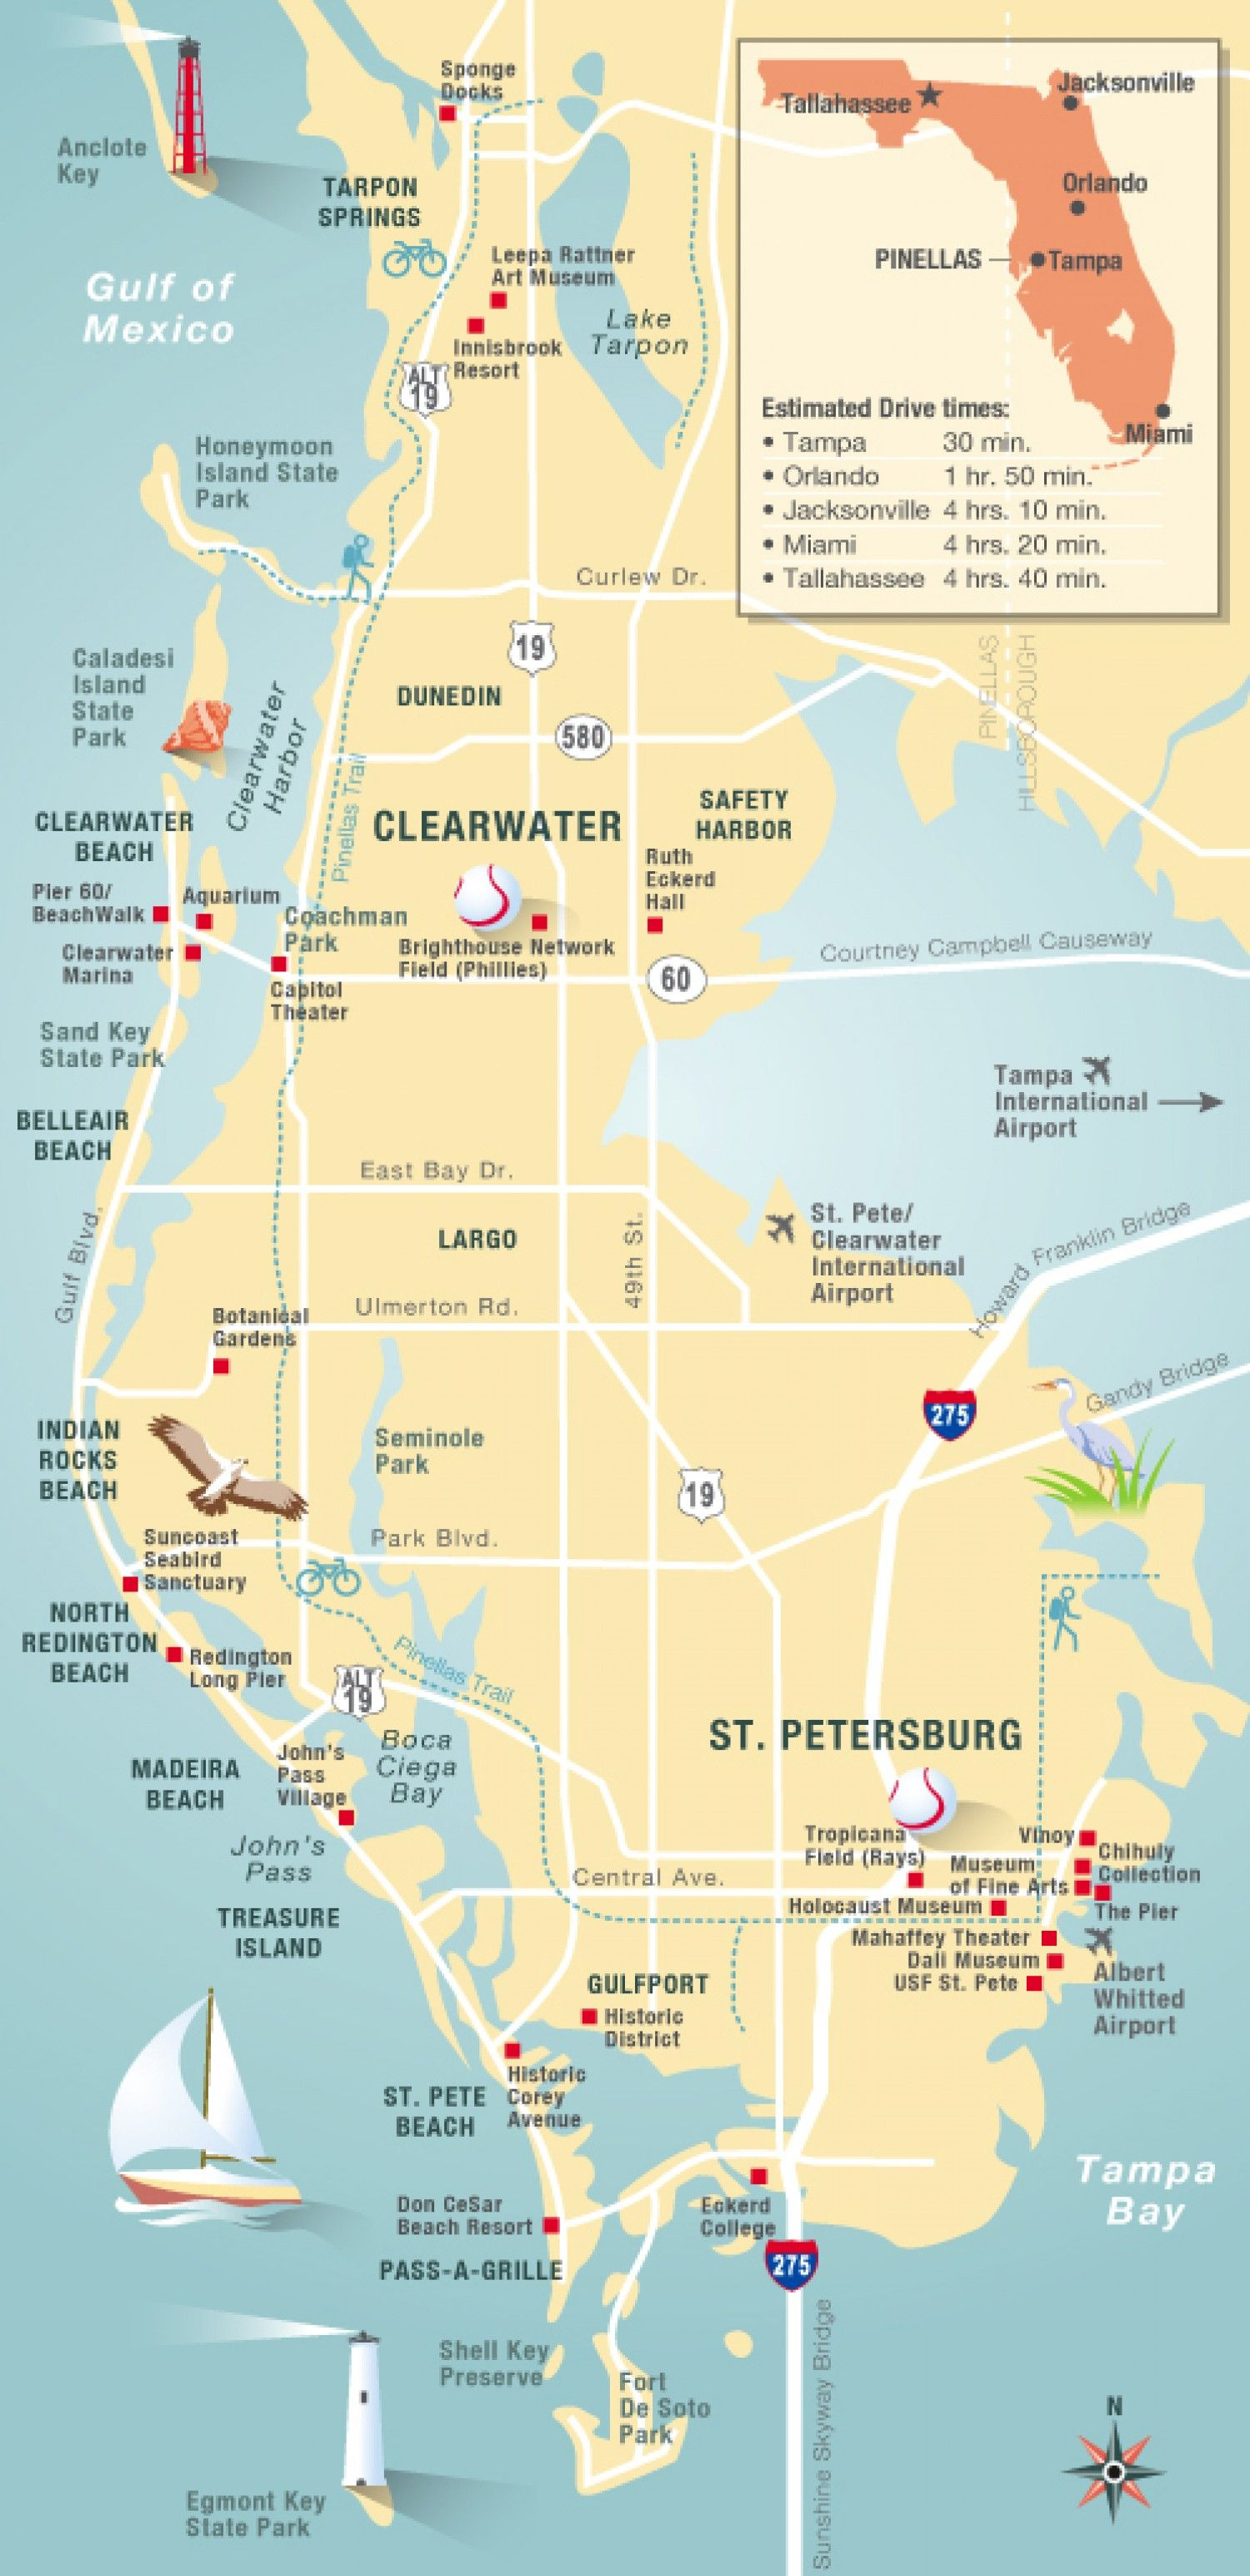 Pinellas County Map Clearwater, St Petersburg, Fl   Travel In 2019 - Clearwater Beach Florida Map